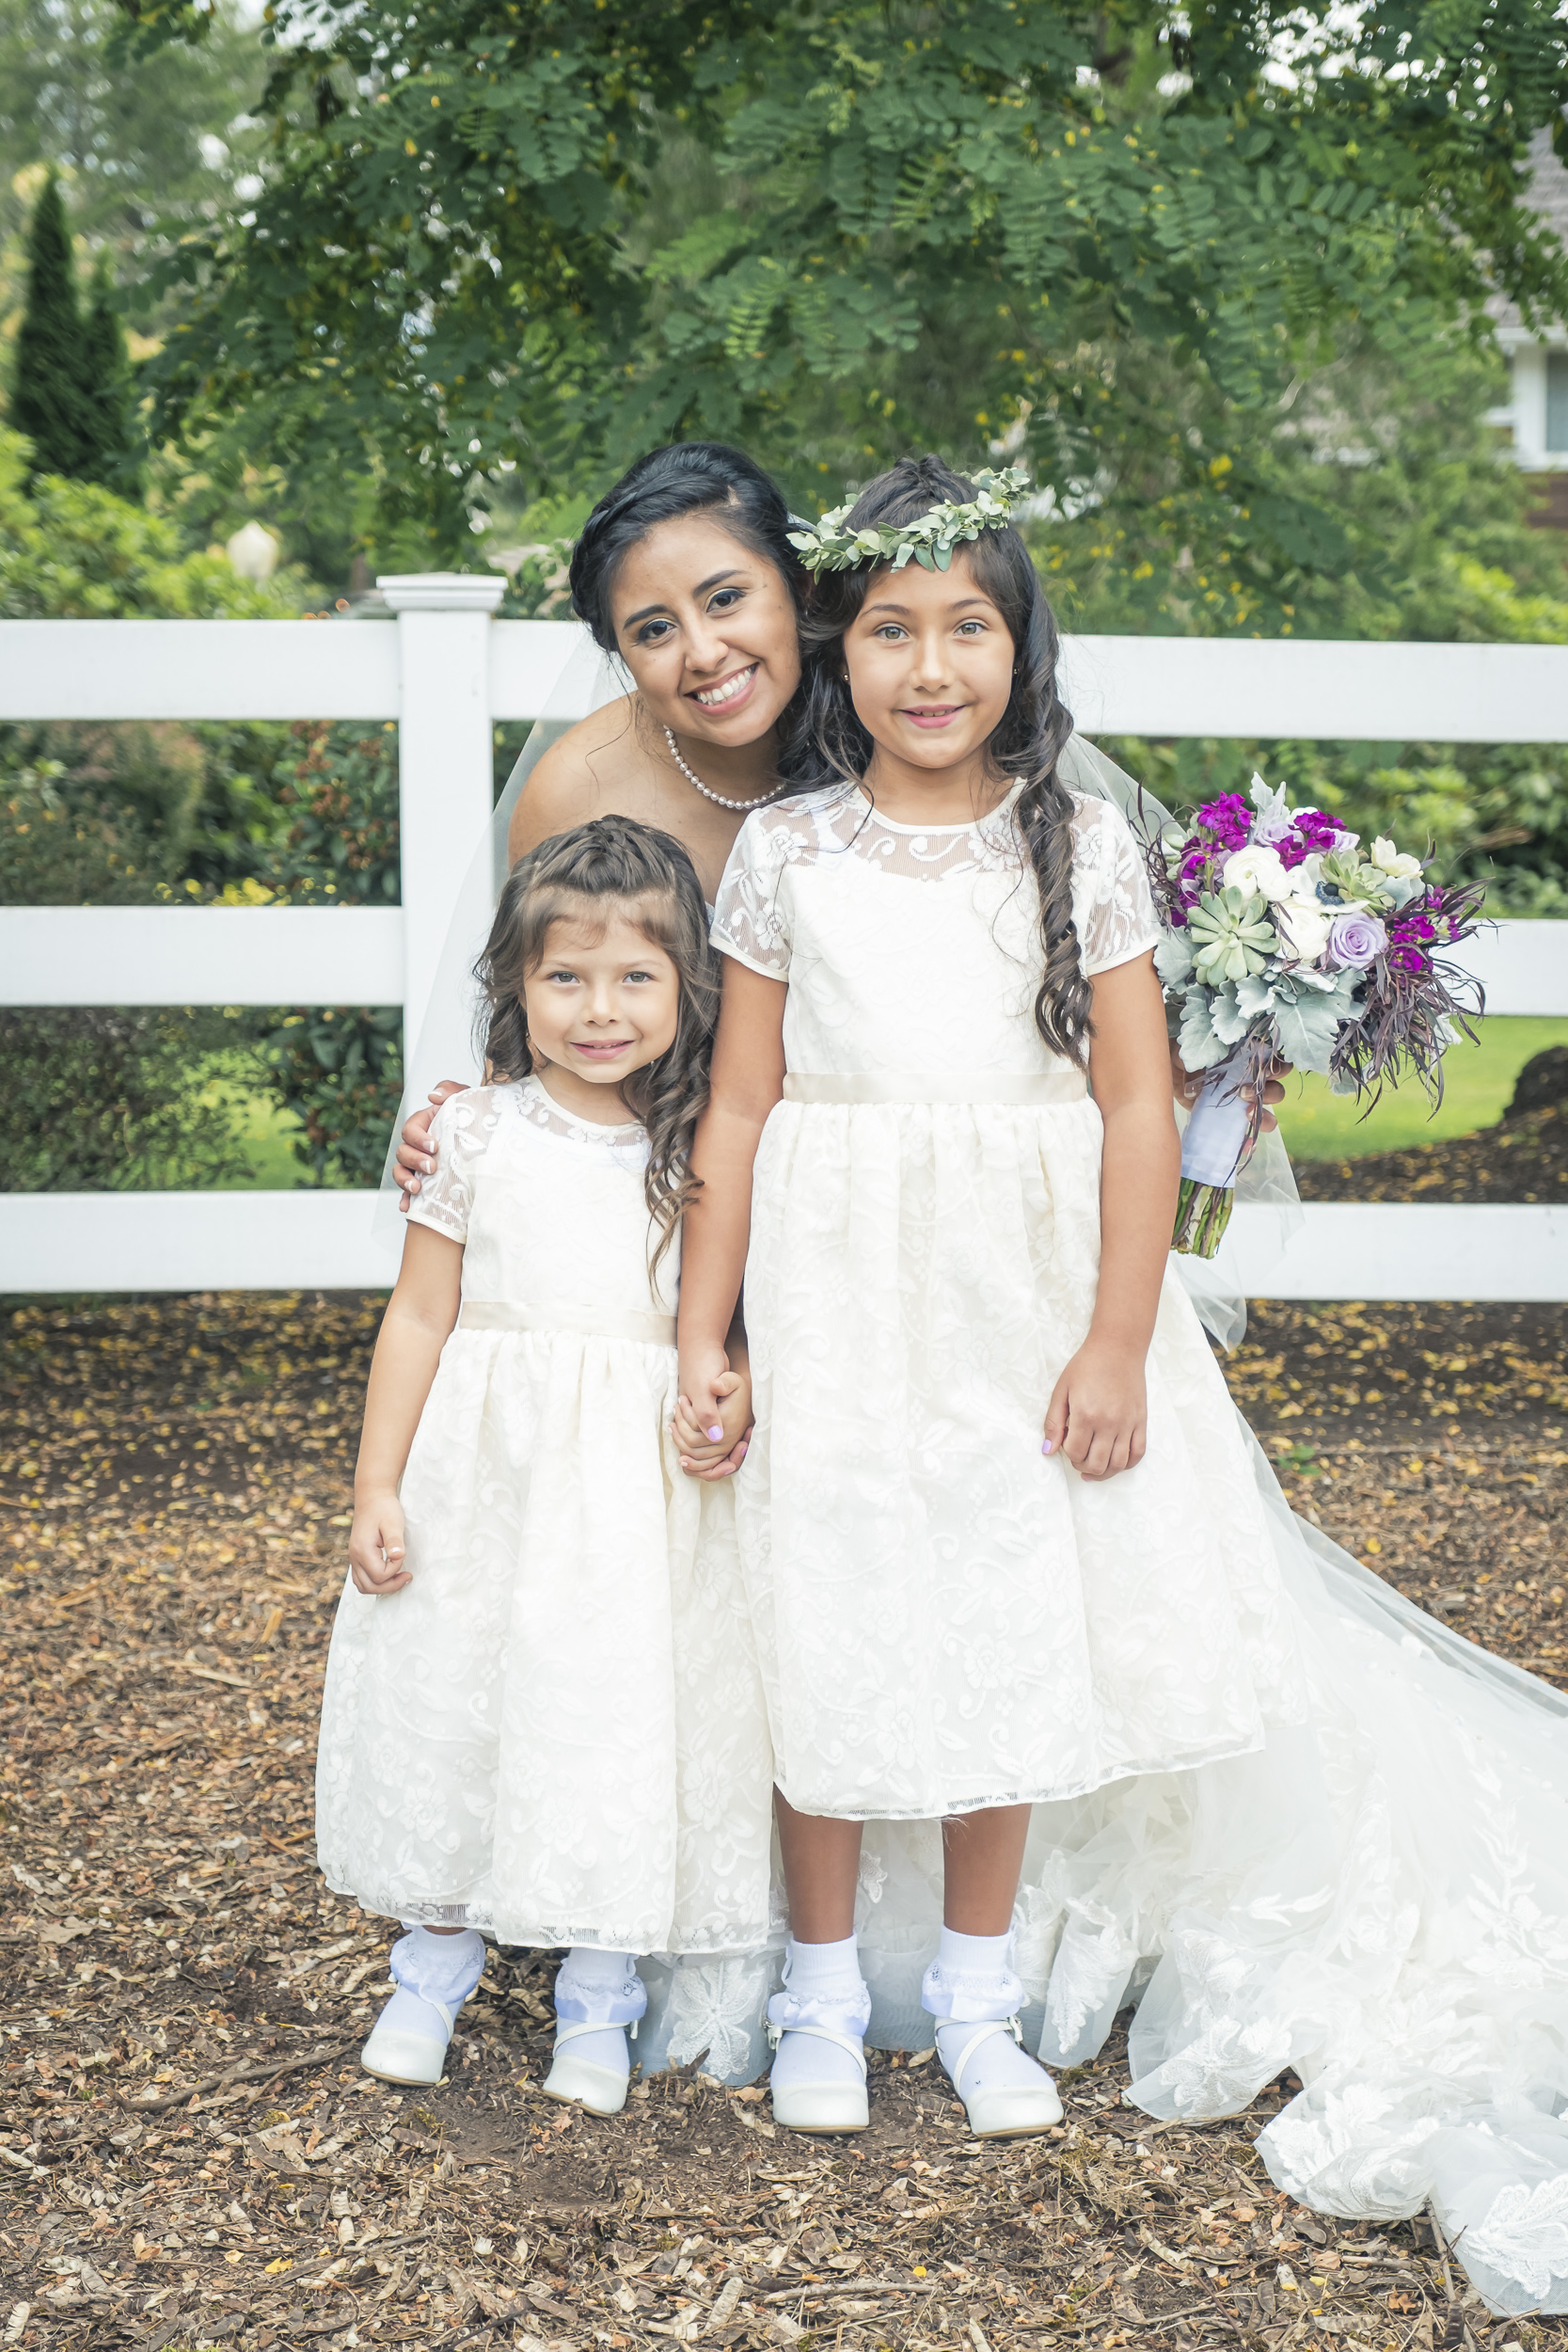 Natalie and Brian Wedding by Michael Sladek Photography-4.jpg